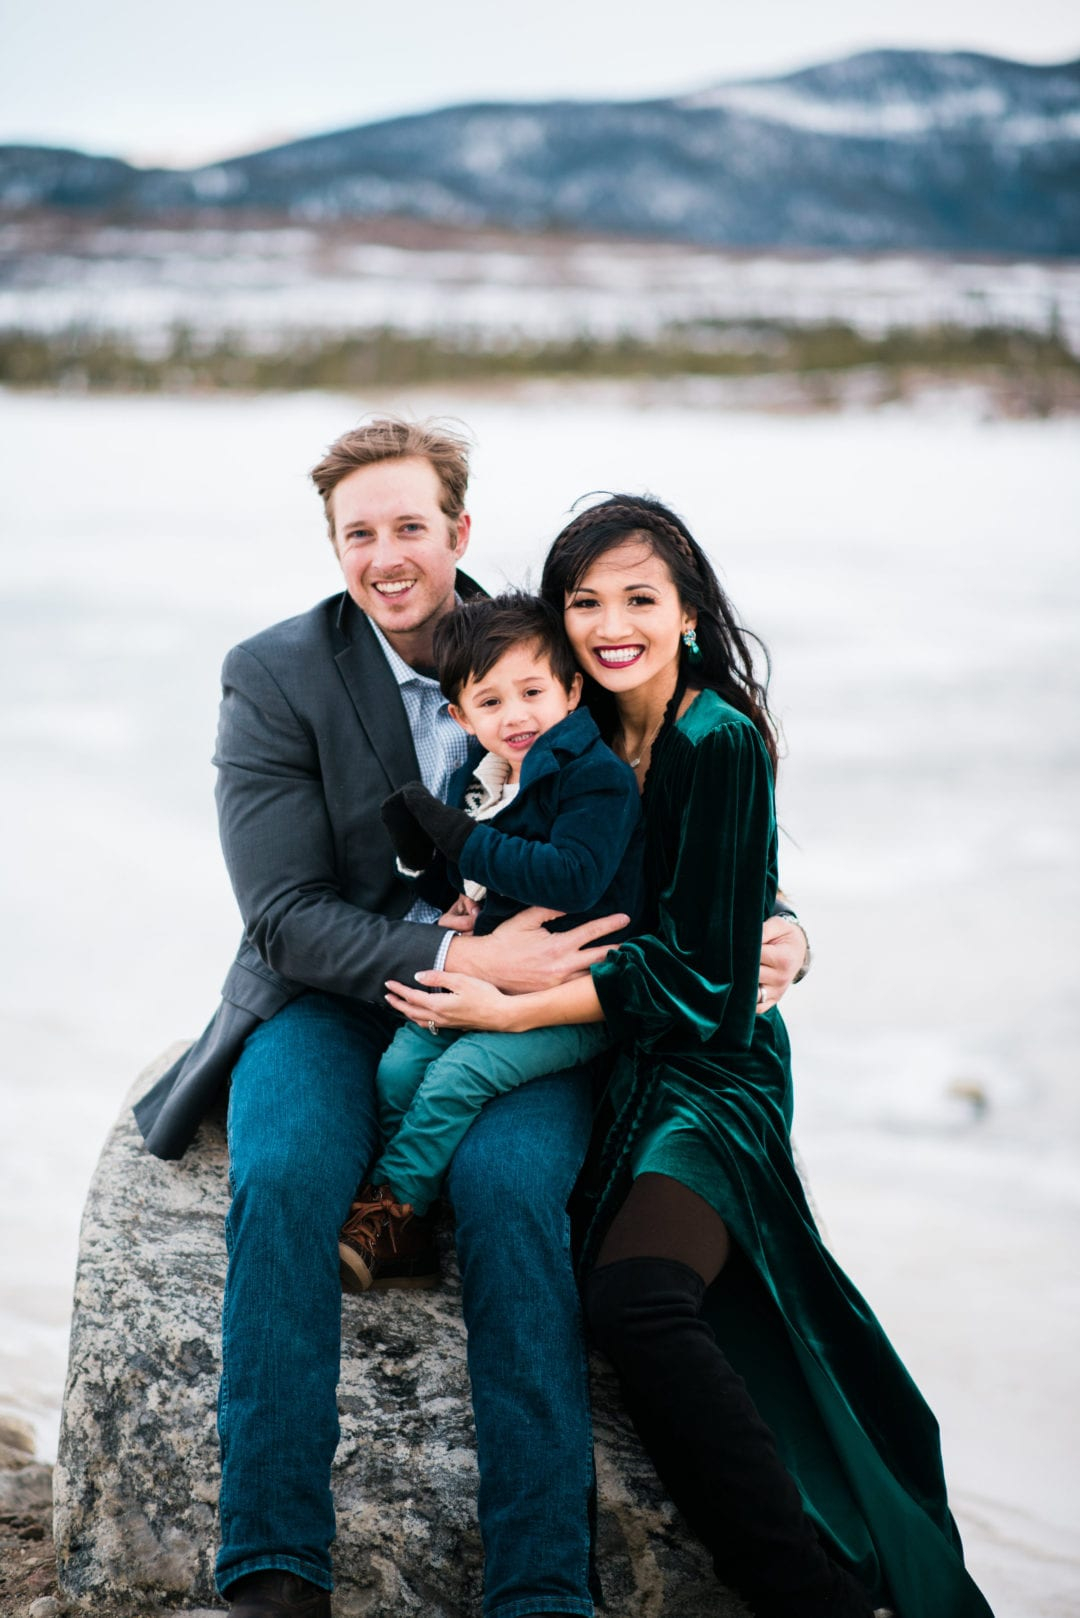 family pictures, snow family pictures, Colorado family pictures, frozen lake, christmas card family pictures